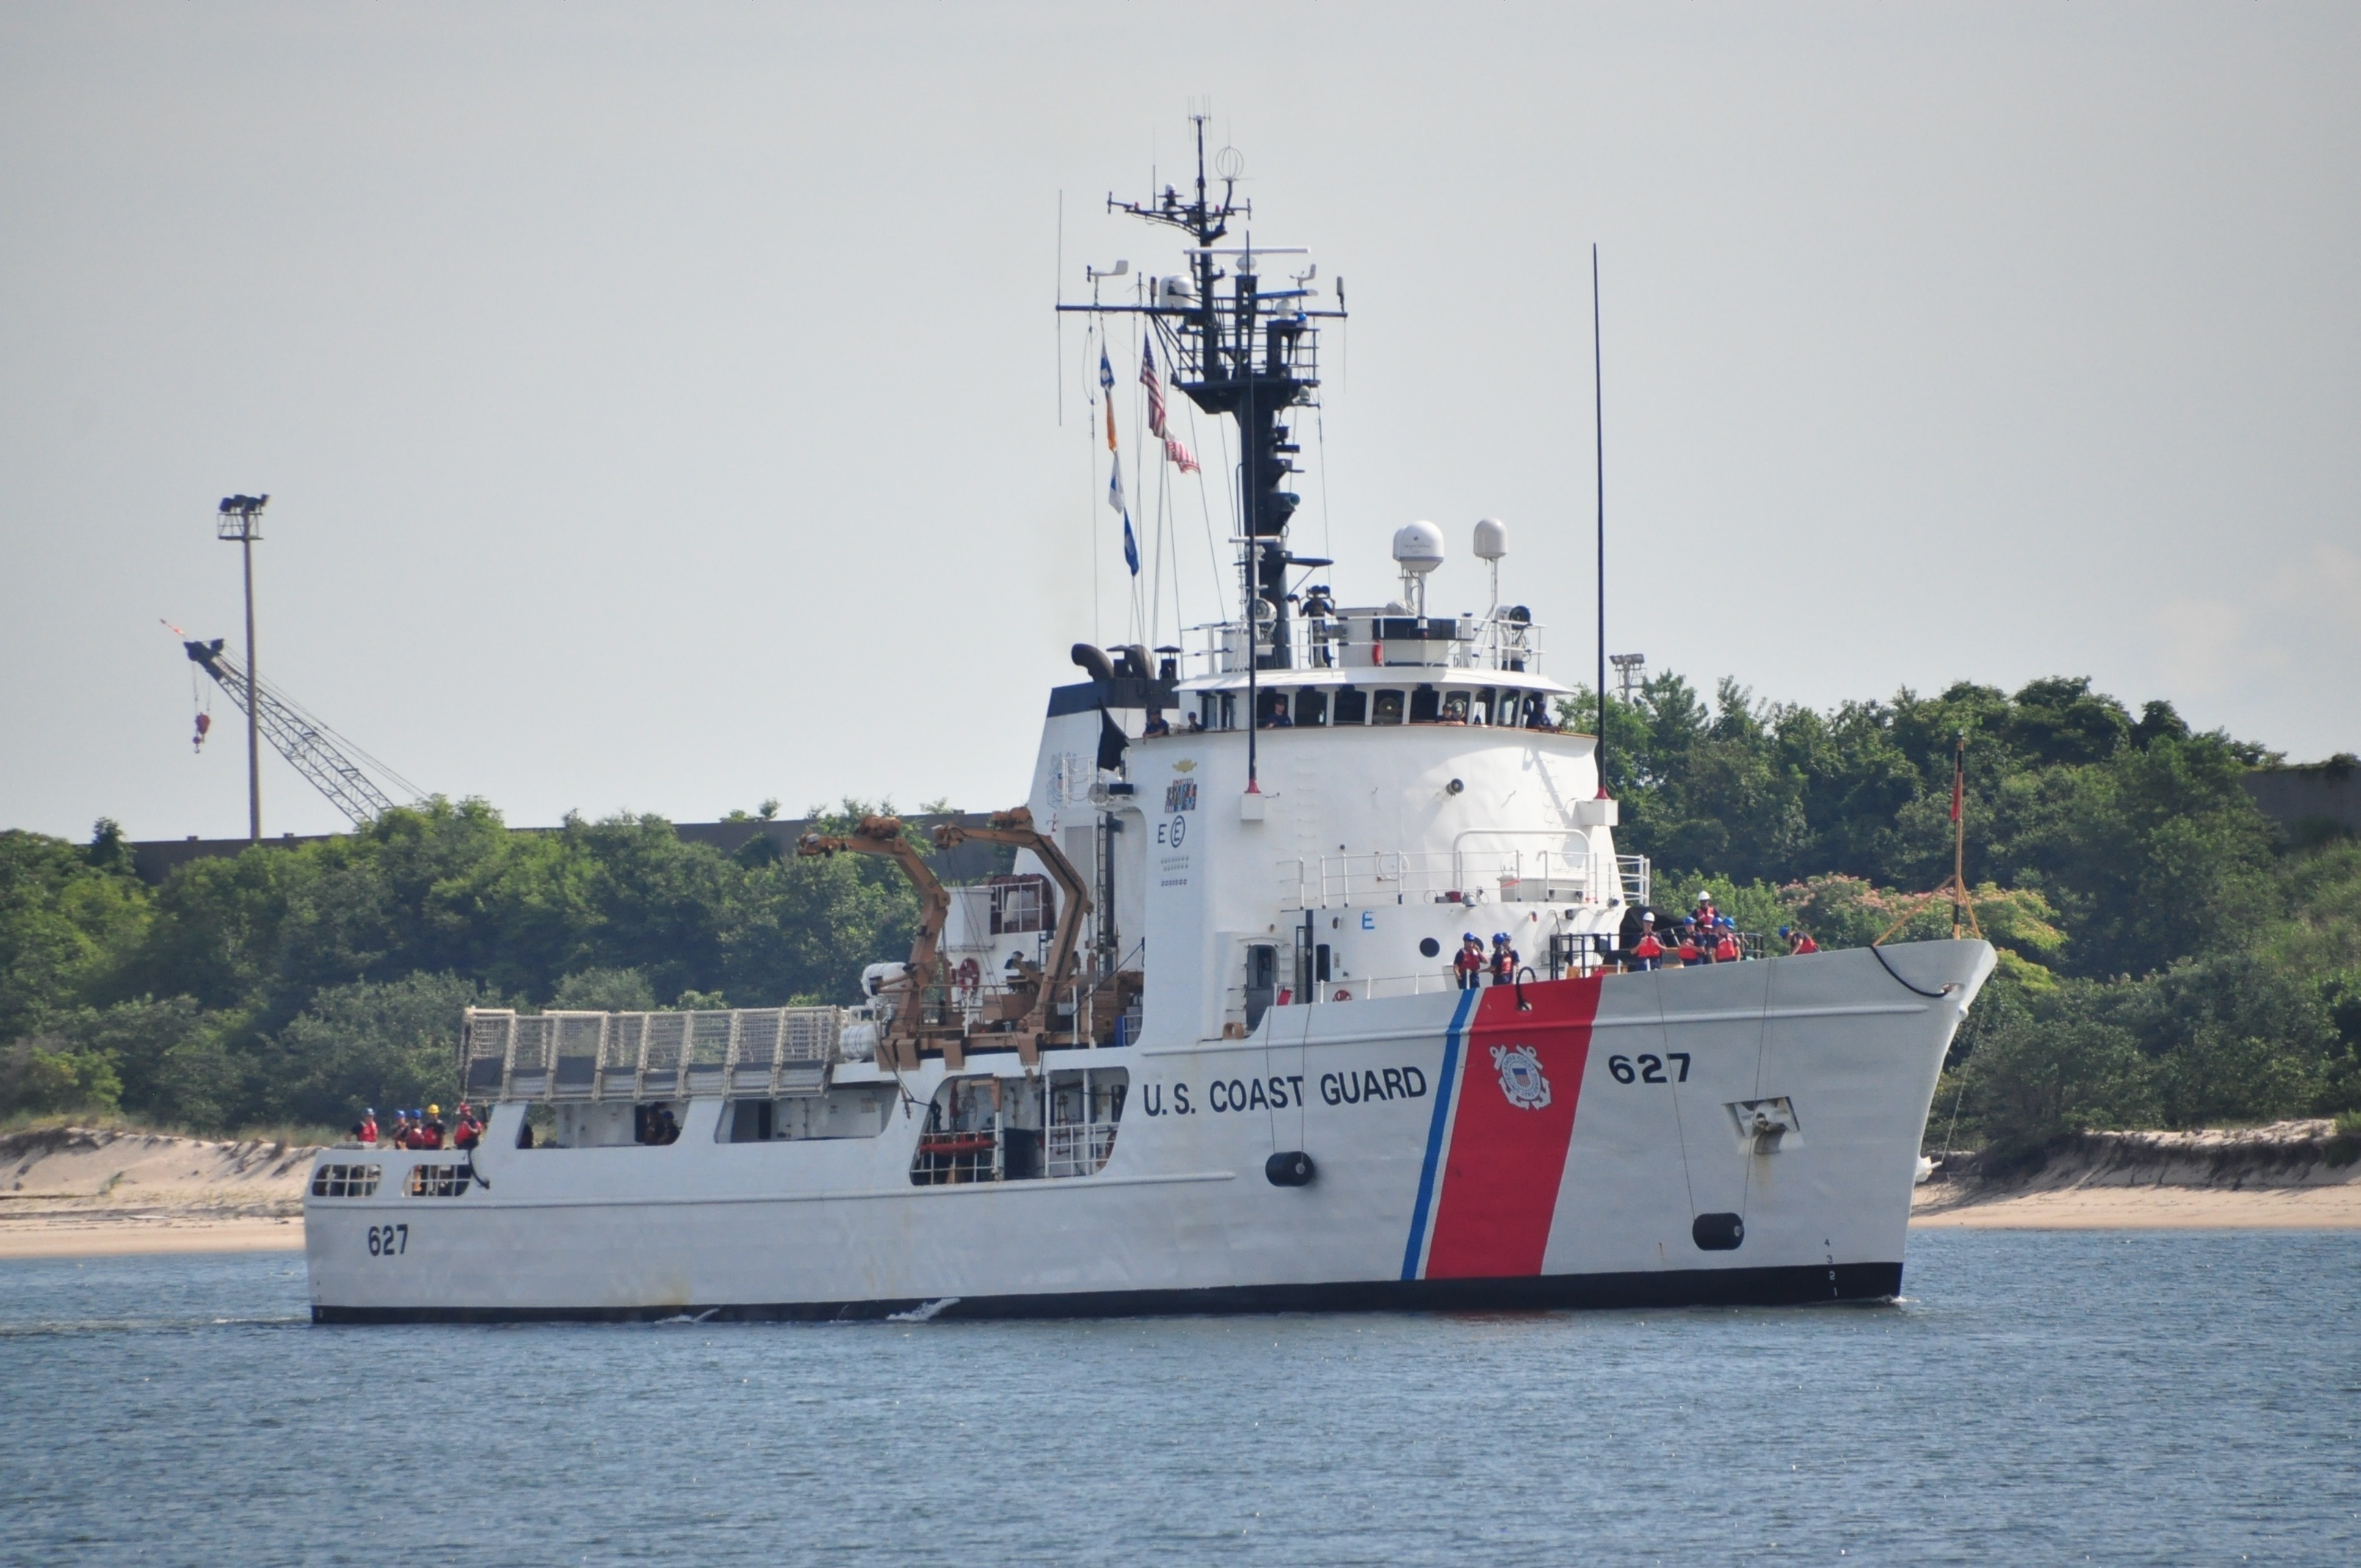 United States Coast Guard > Our Organization > Strategy